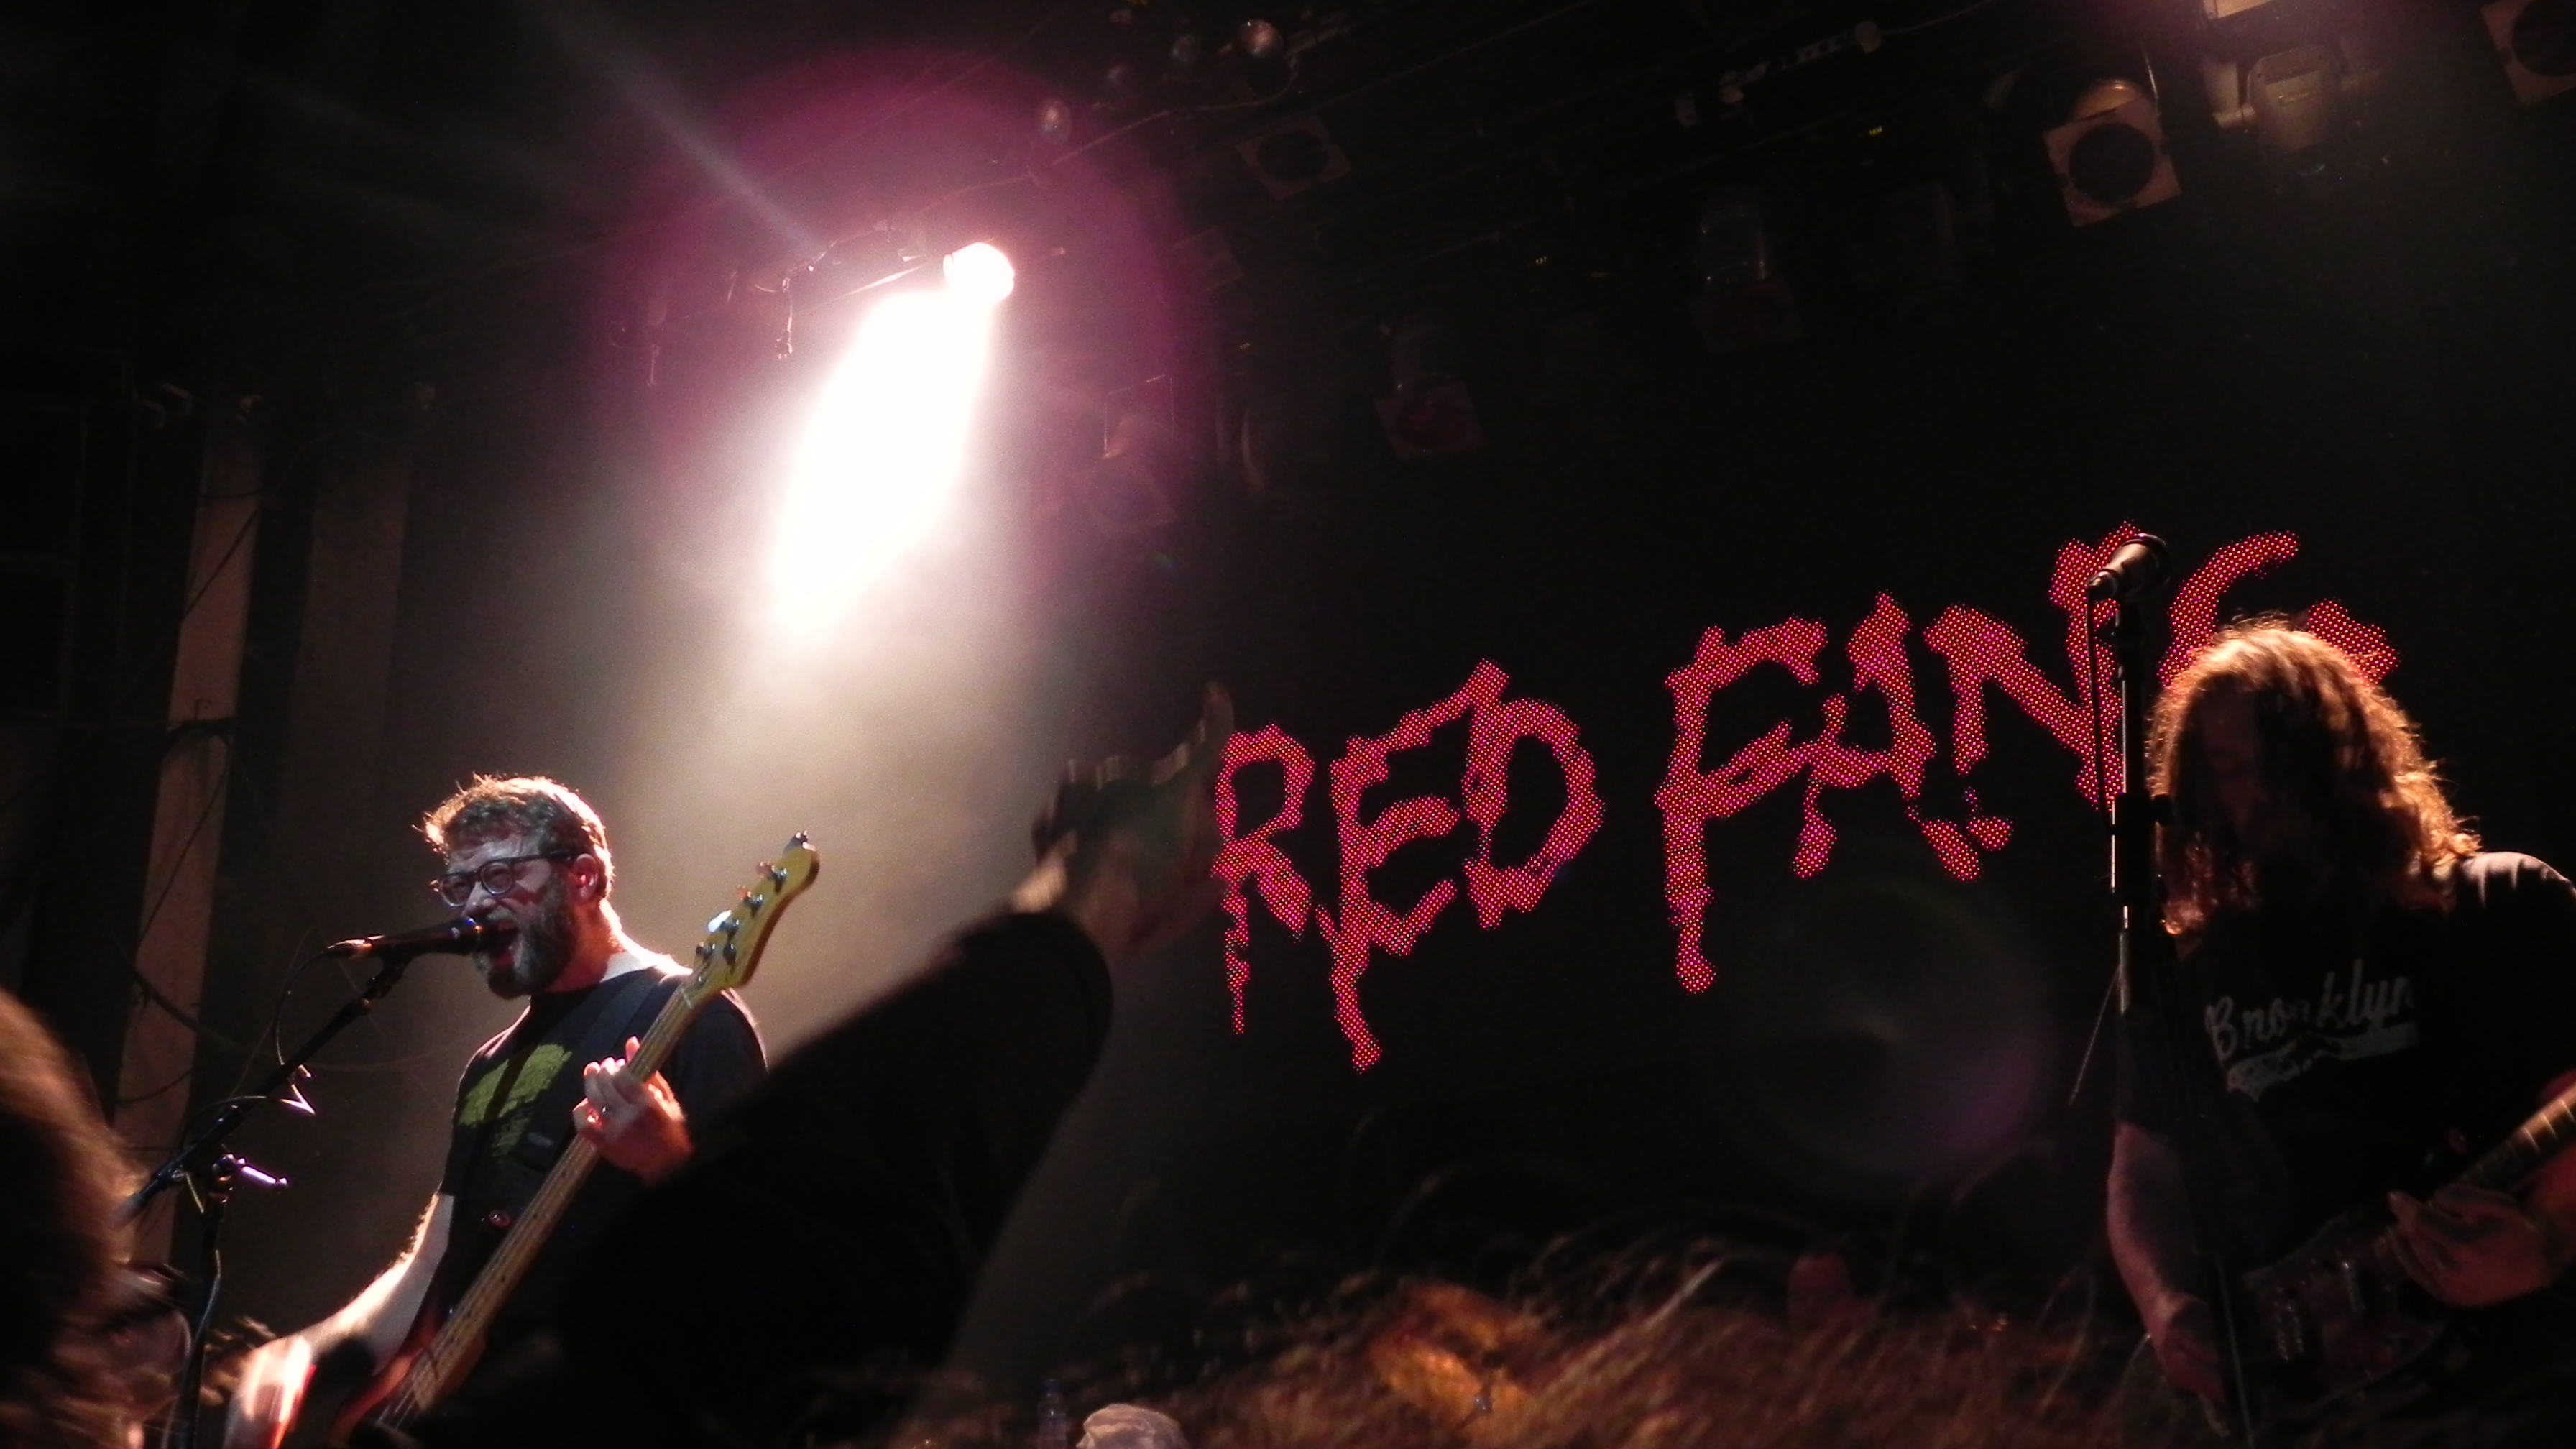 red-fang-sala-arena-madrid-25-enero-2014-fang